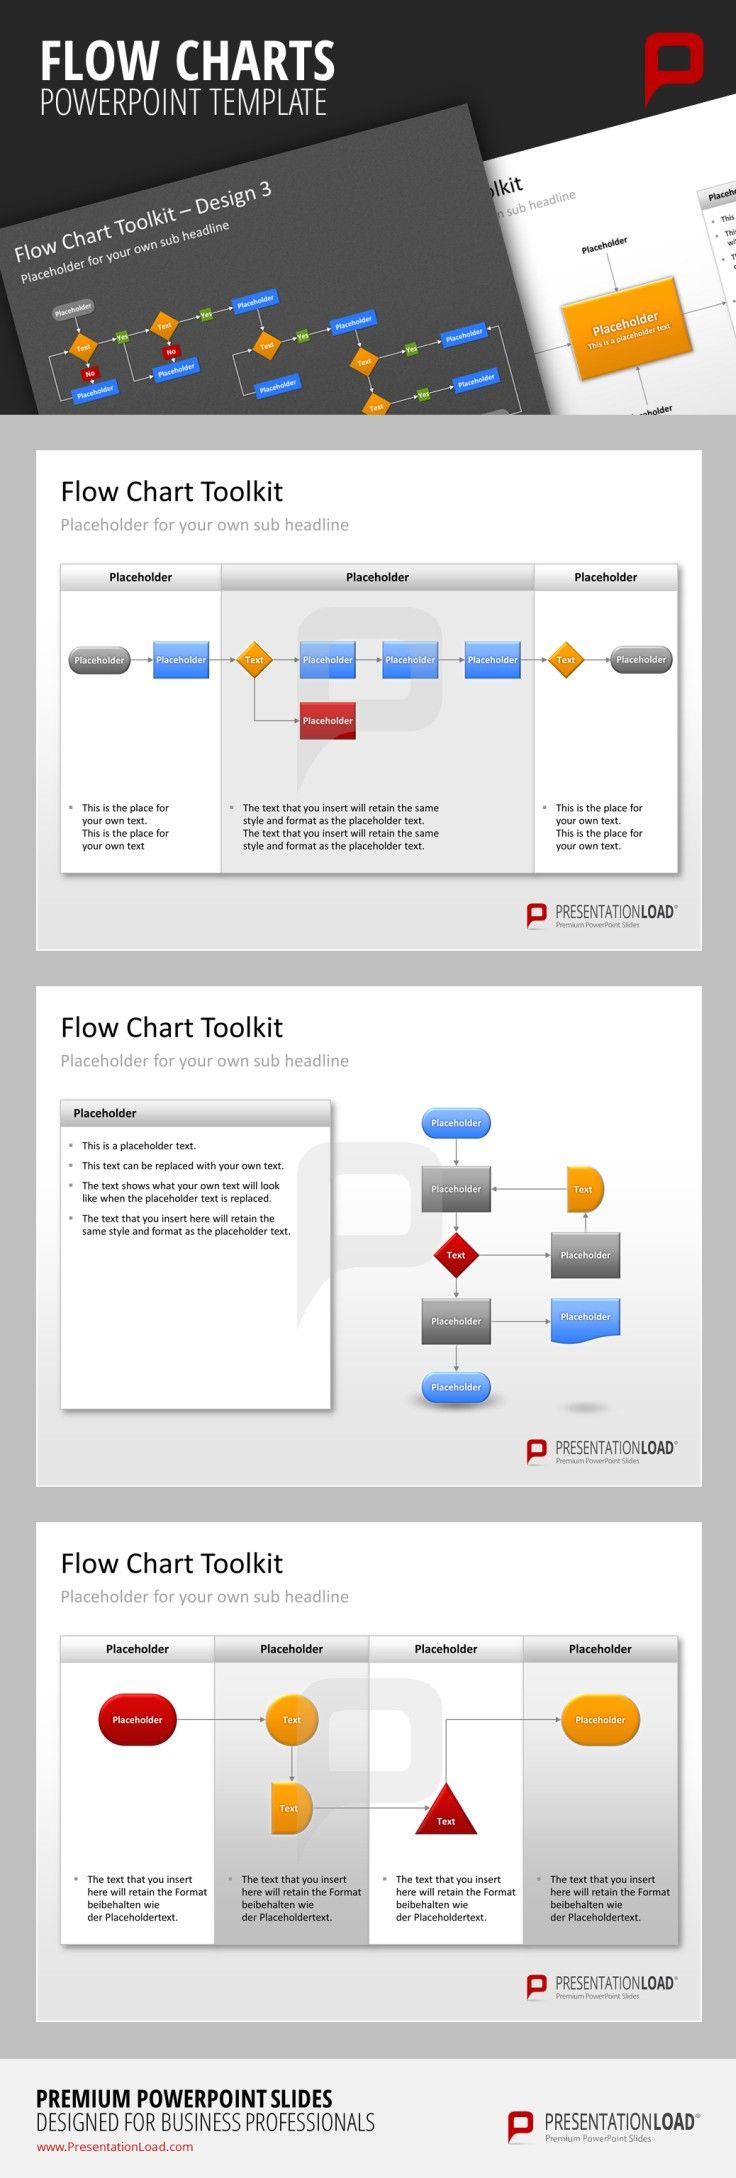 hight resolution of flow charts powerpoint templates create individual flow charts and use them to analyze manage or document specific processes in various fields